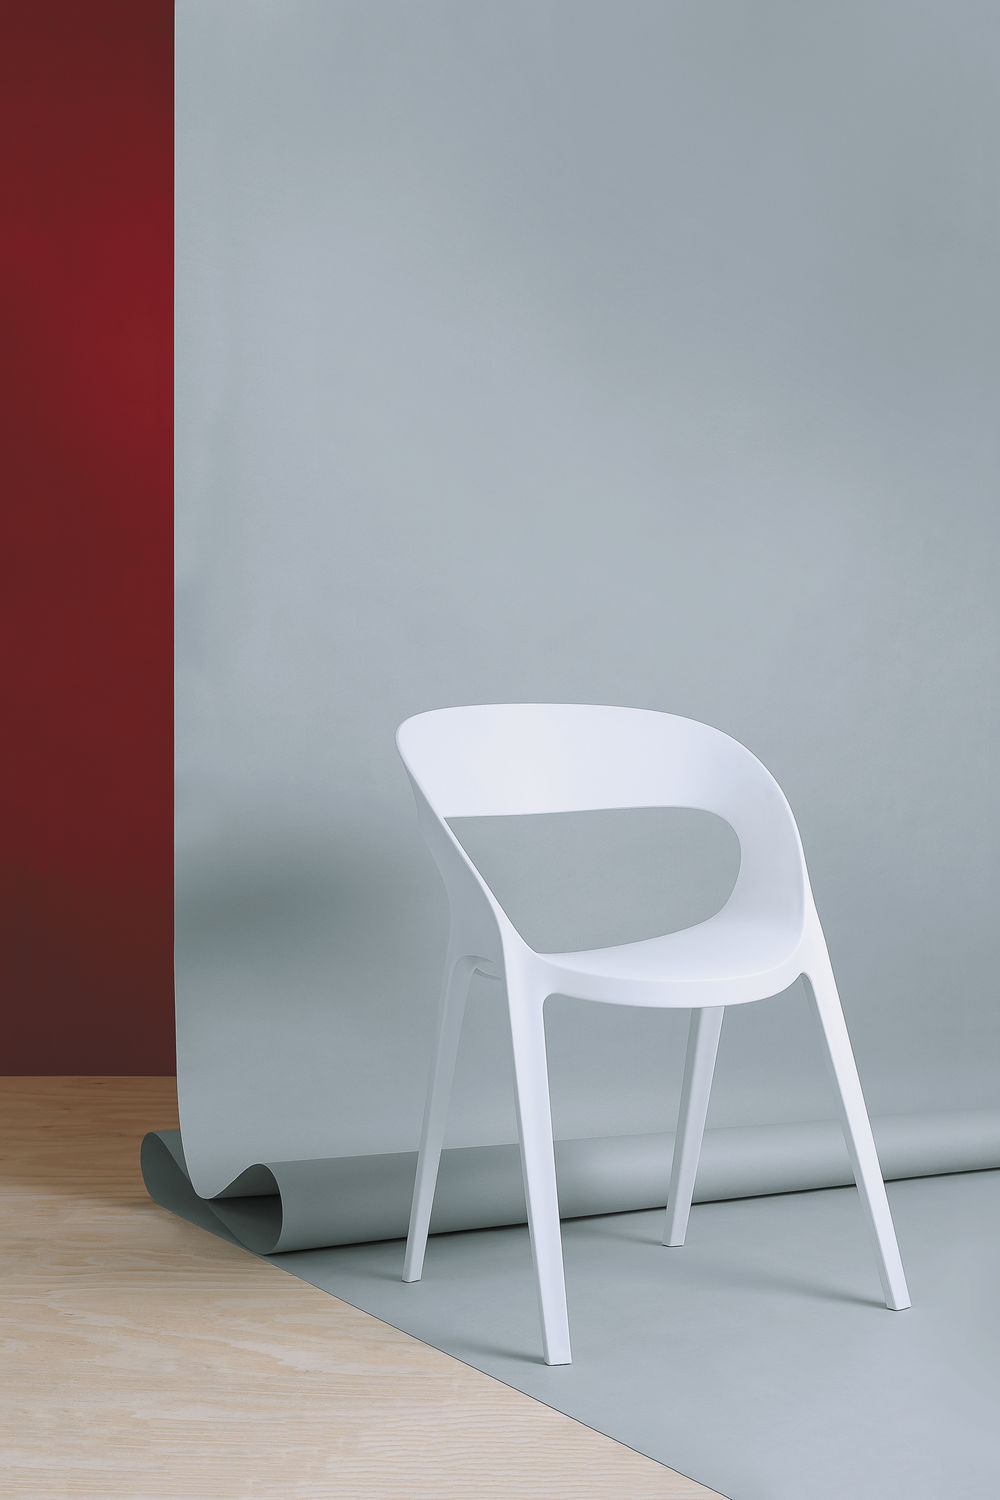 contemporary chair polypropylene garden carla by fabrizio contemporary chair polypropylene garden carla by fabrizio batoni barcelona dd by resol